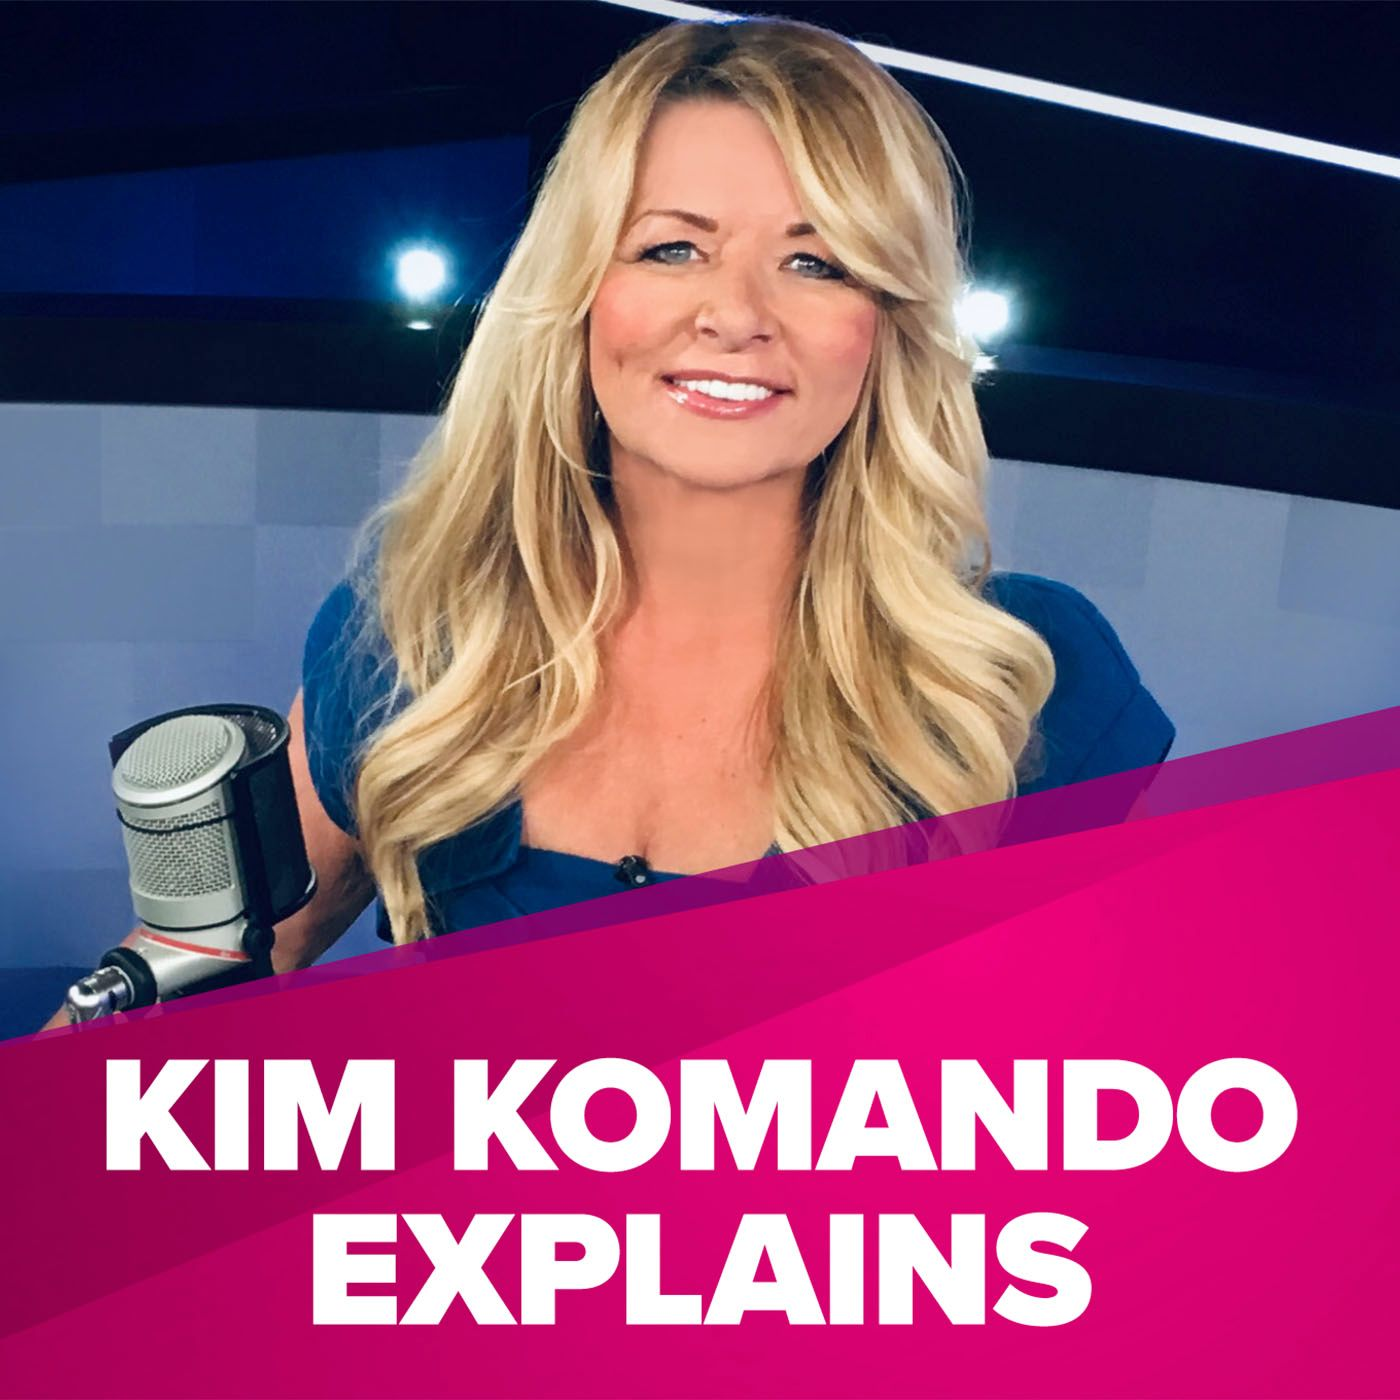 Kim Komando Explains